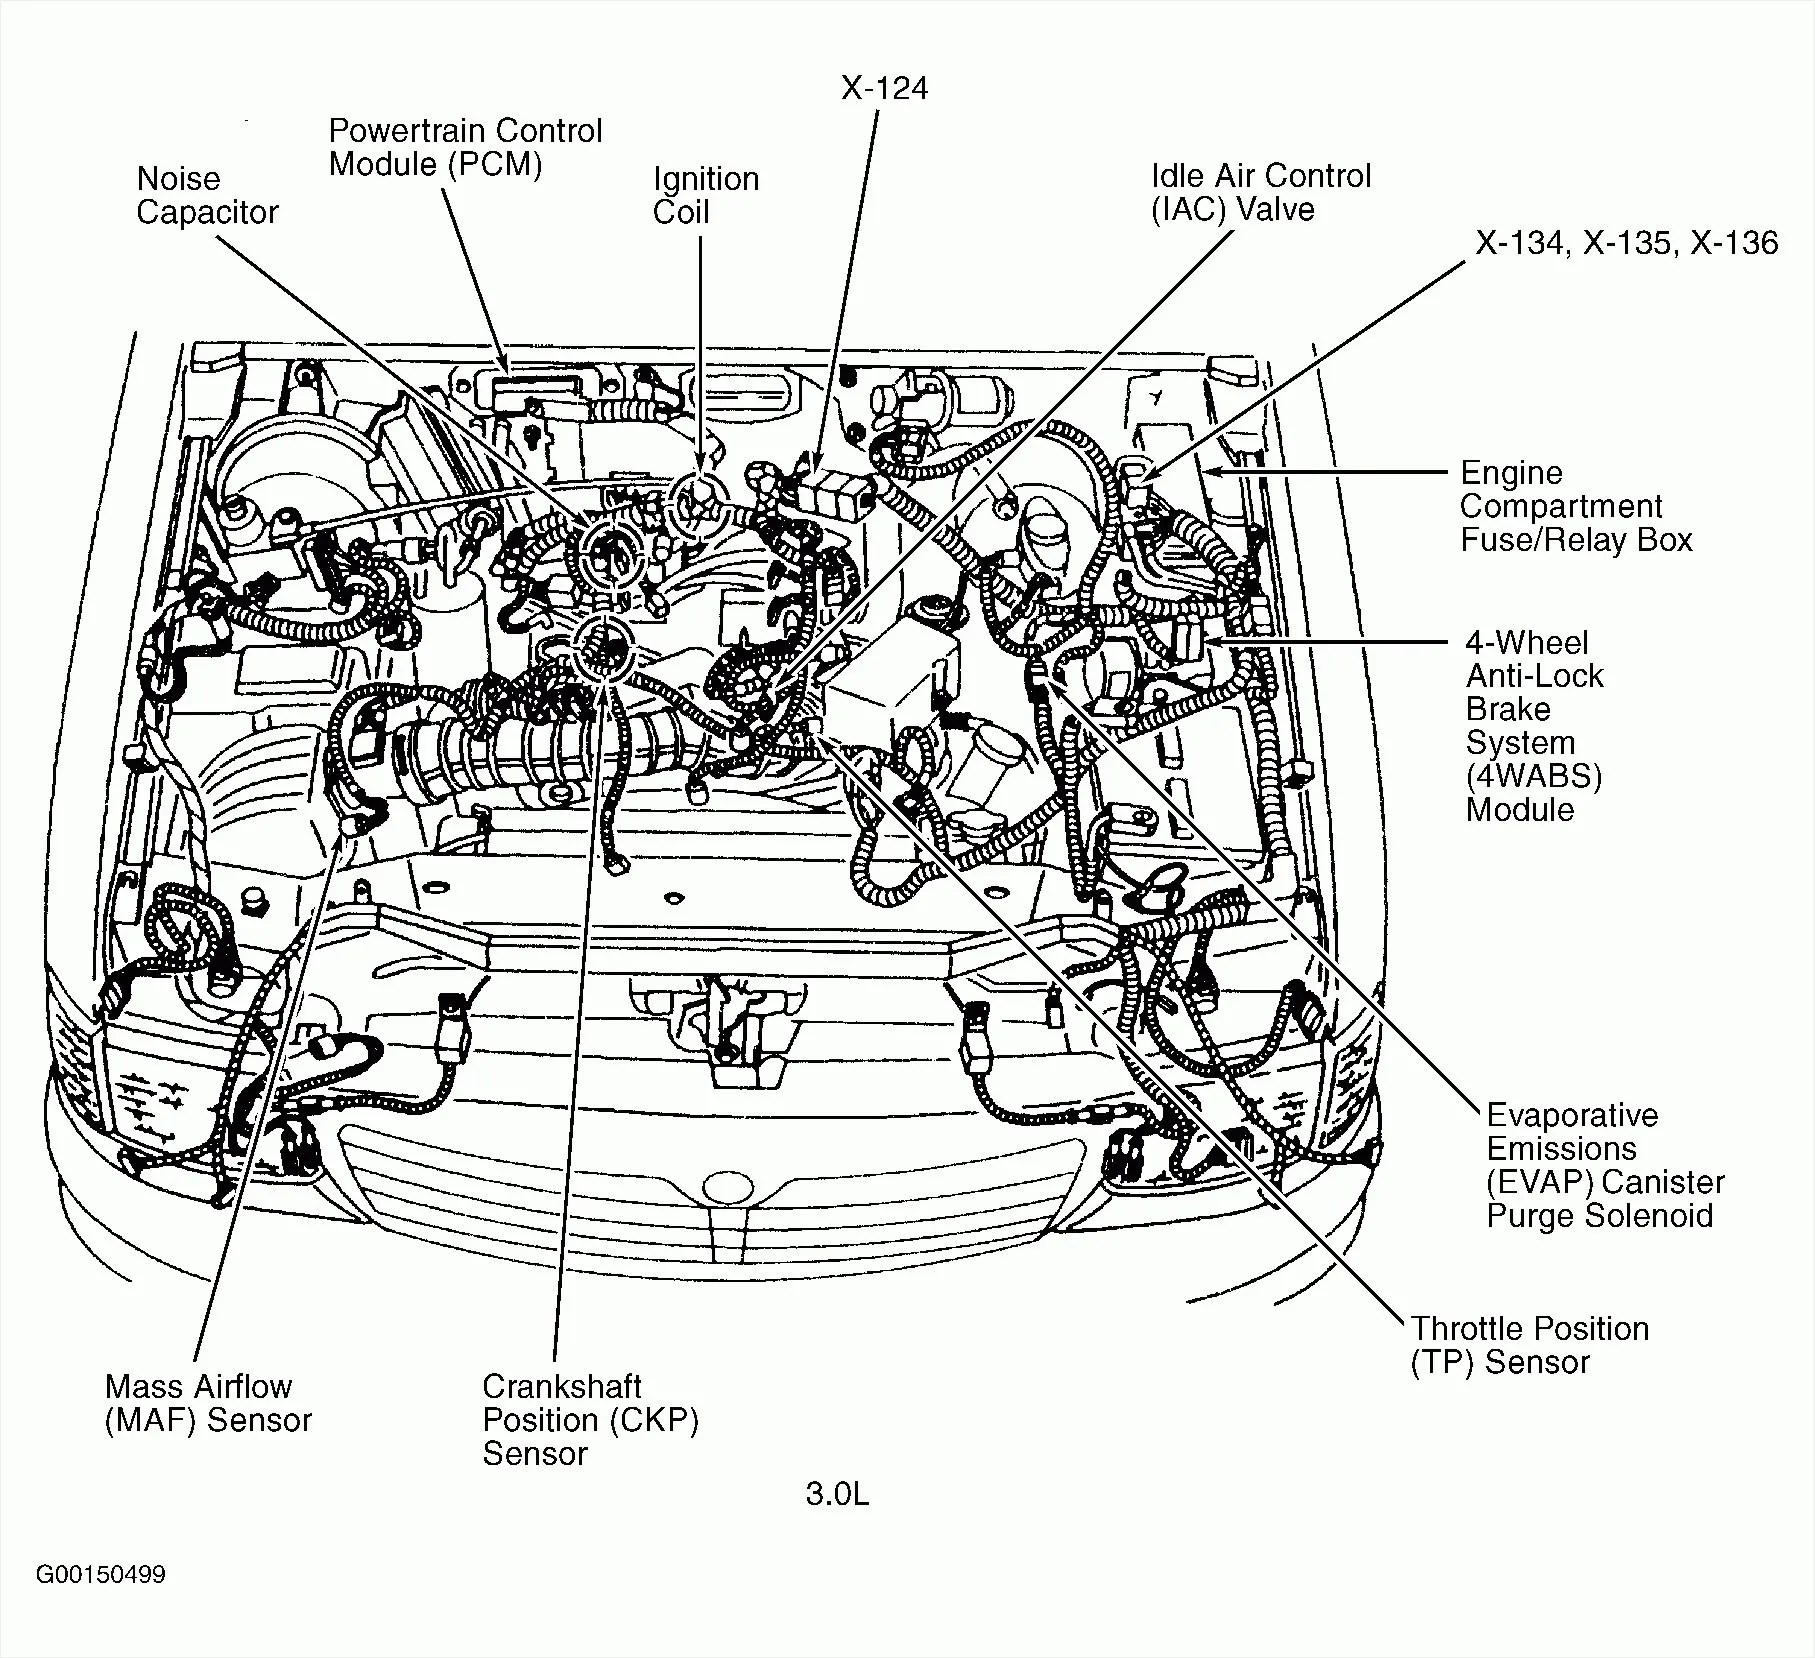 hight resolution of chevy 3 1 engine diagram wiring diagram third level rh 16 7 20 jacobwinterstein com 4 2l v6 idler pulley torque 1997 ford f 150 v6 engine